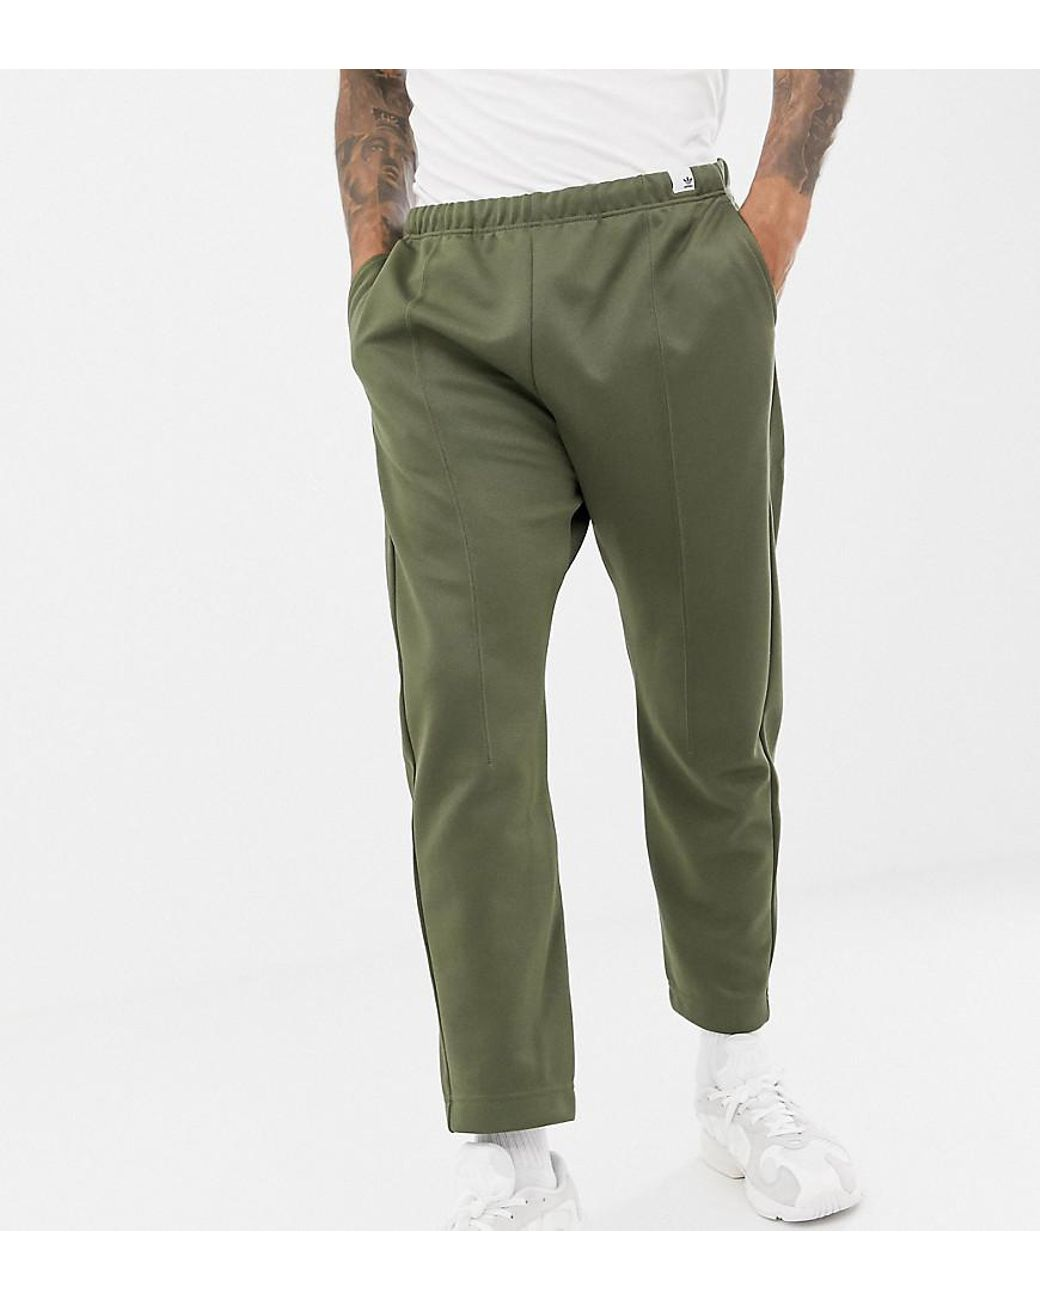 d4f73ee4f924 adidas Originals Xbyo Track Pants In Olive in Green for Men - Lyst